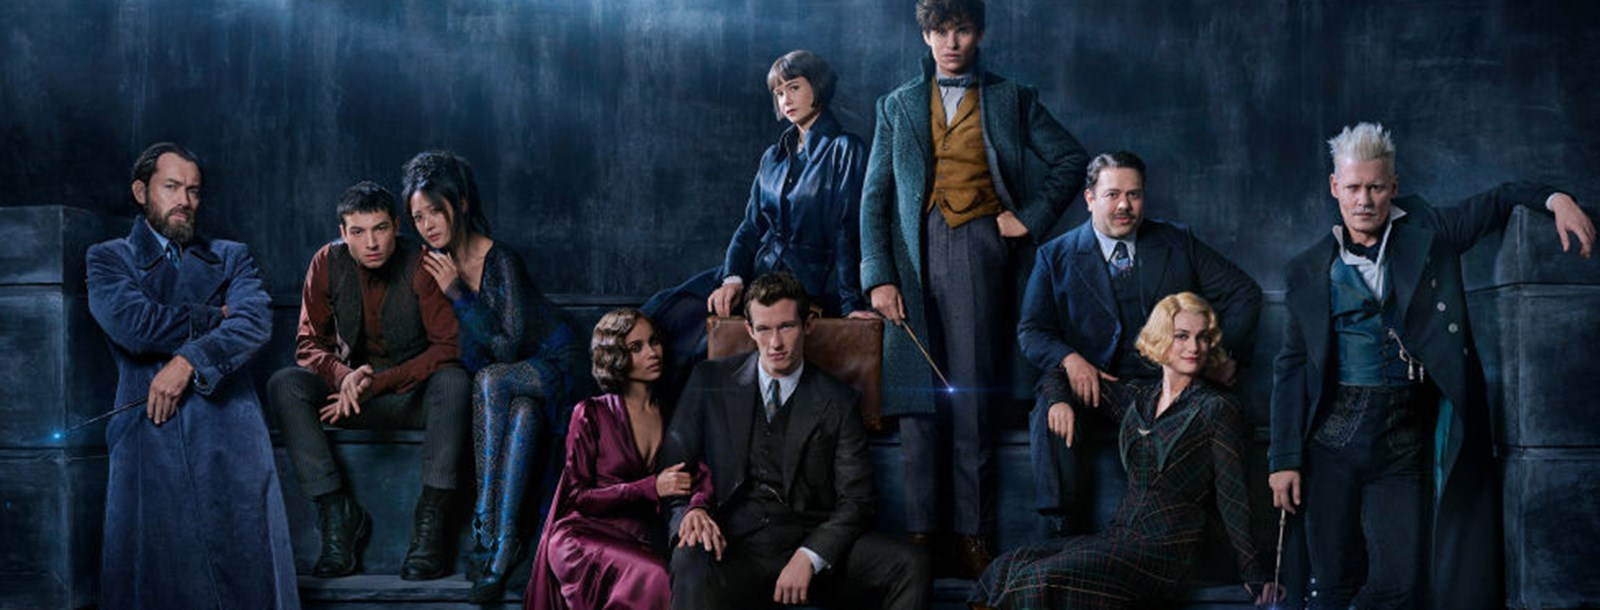 Fantastic Beasts: The Crimes of Grindelwald - Možda i previše magije